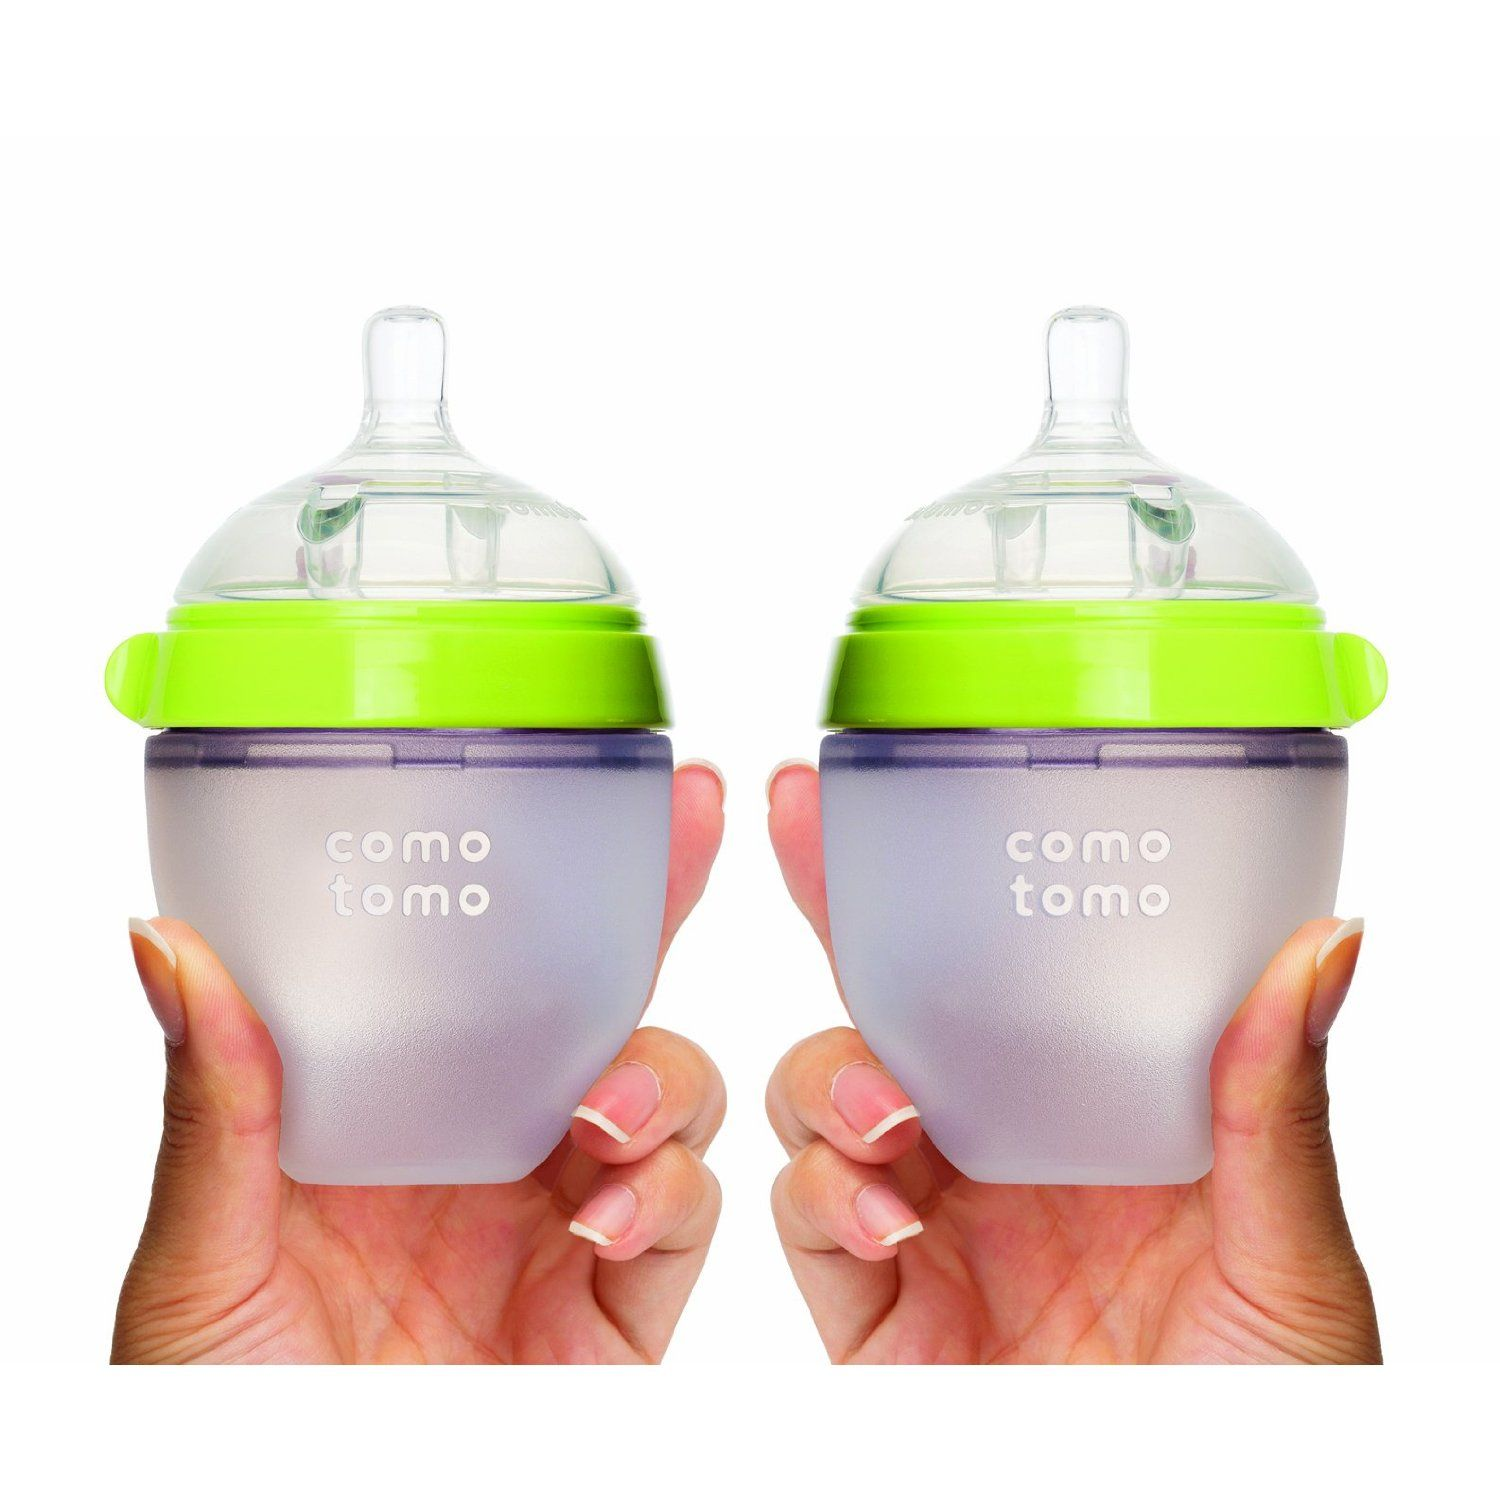 Comotomo Silicone Baby Bottle Double Pack 150ml 5oz Green Amazon Ca Comotomo Silicone Baby Bottle Double Pack 2 Baby Bottles Silicone Baby Bottles Comotomo